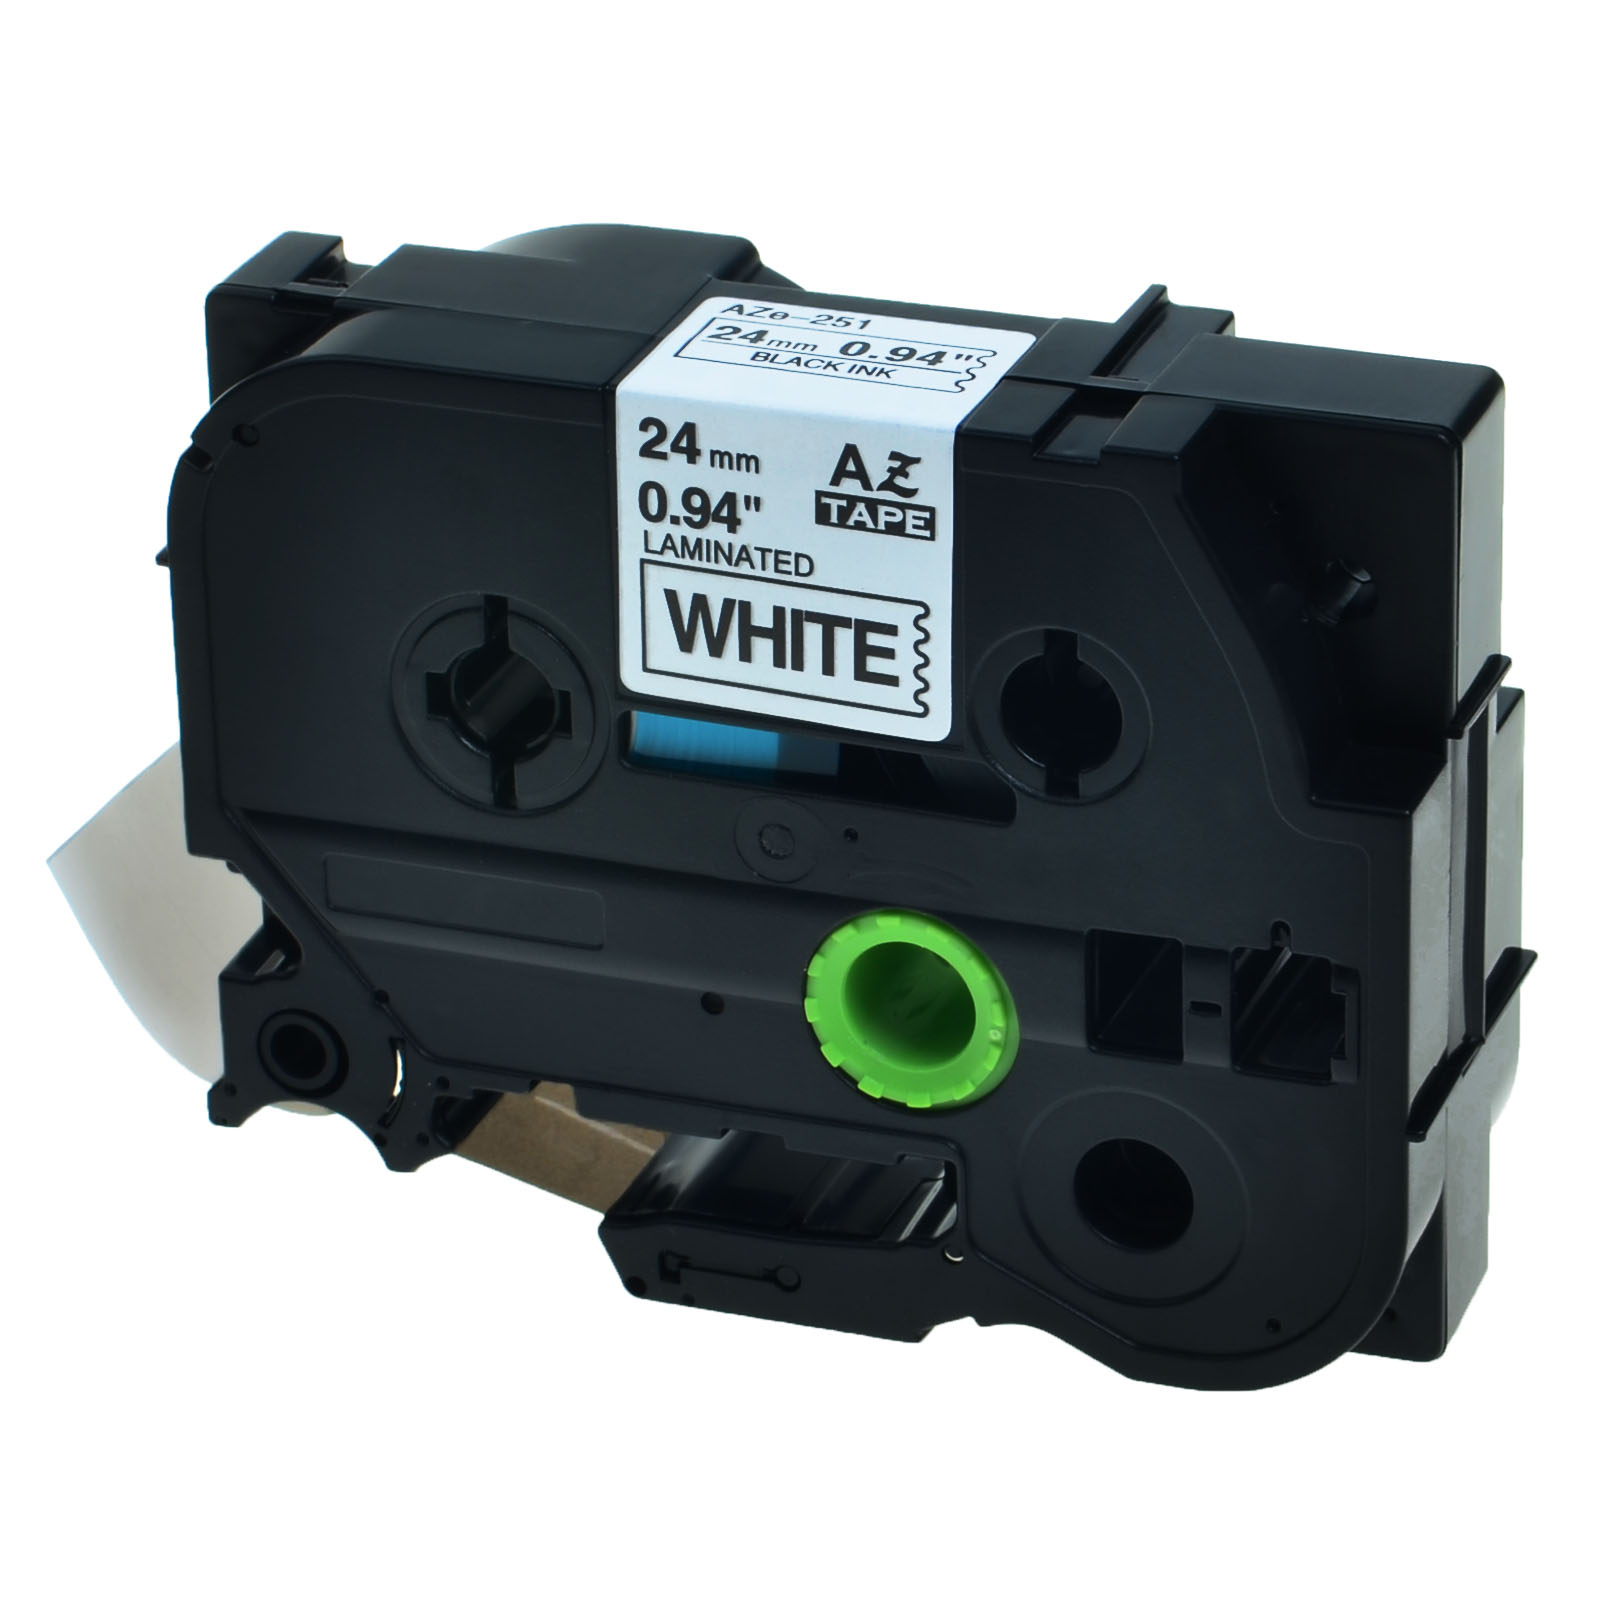 20PK TZ-251 TZe-251 Black on White Label Tape For Brother P-Touch PT-P750W 0.94/""